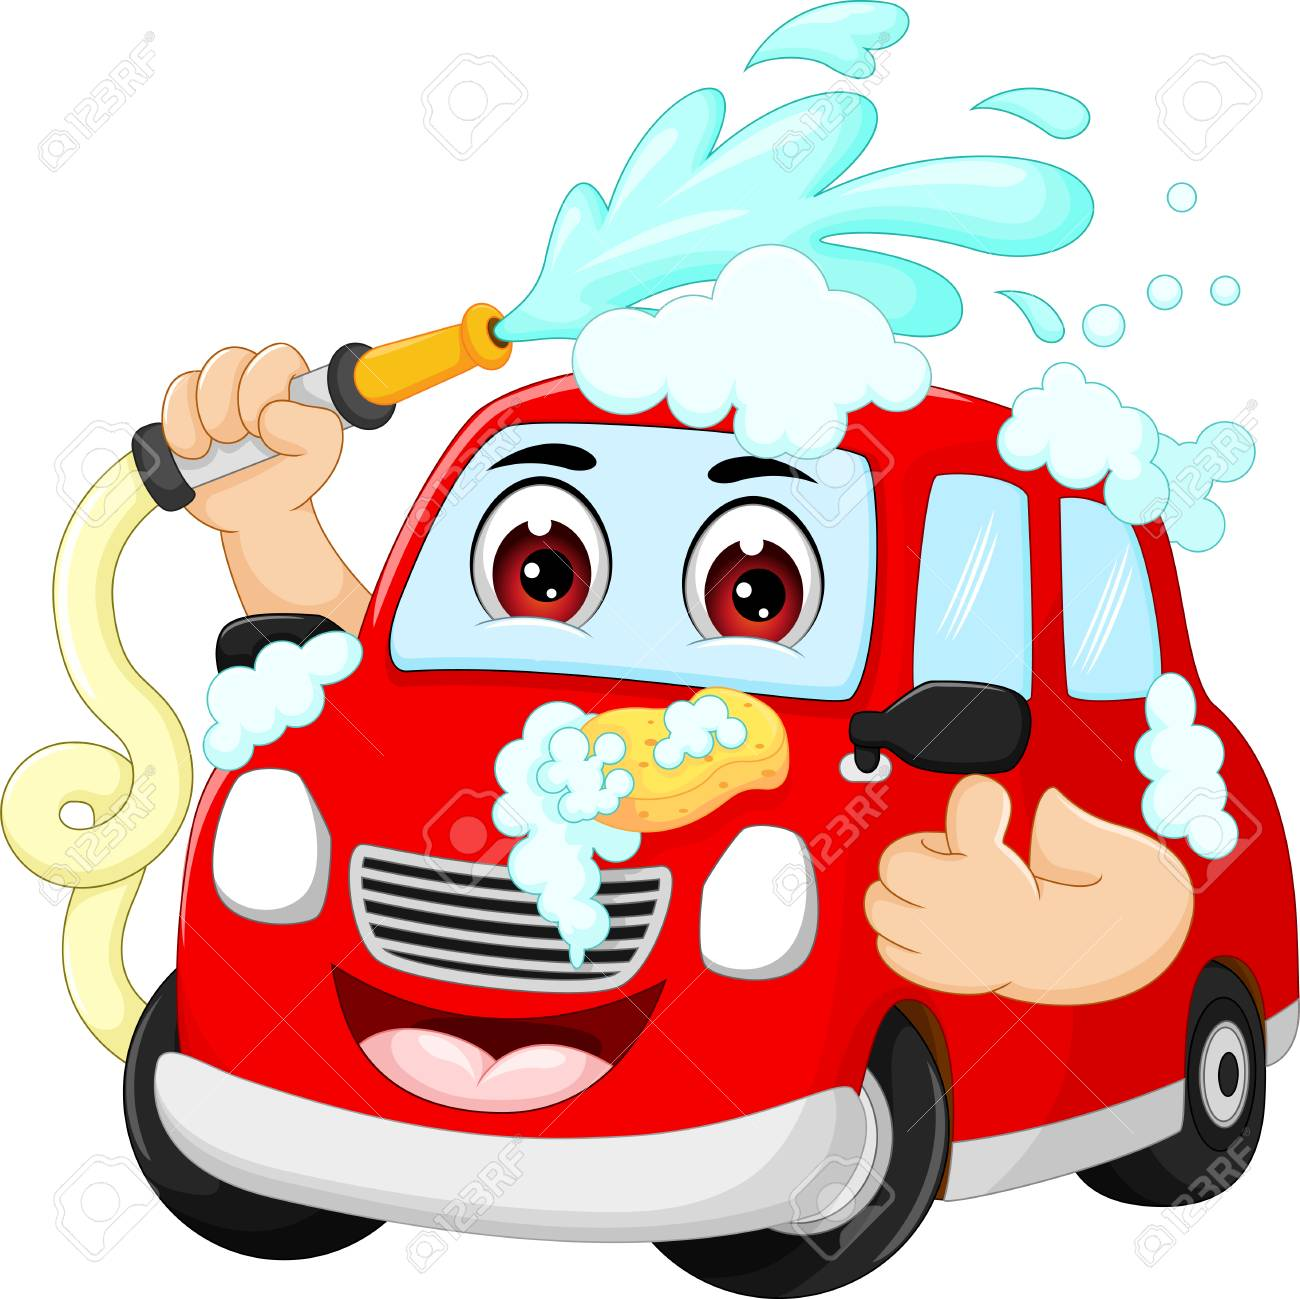 funny car wash cartoon with smile and thumbs up royalty free rh 123rf com car wash cartoon fish car wash cartoon pictures free